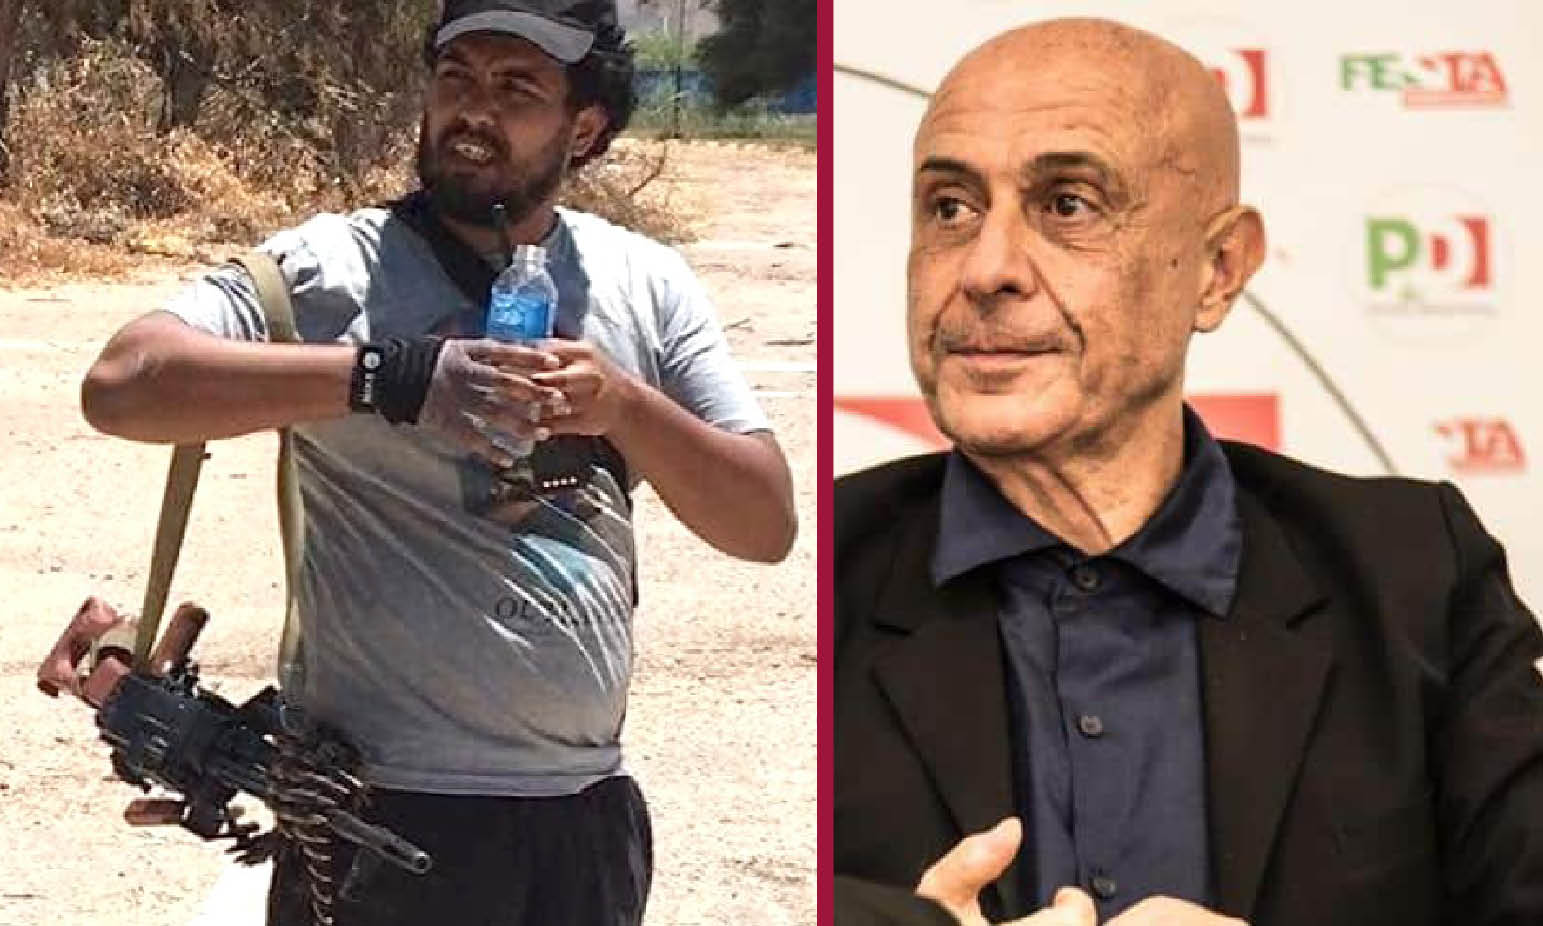 KILLED IN LYBIA THE MILITIAN ISIS FRIEND FUNDED BY ITALY WITH $ 5MILIONS